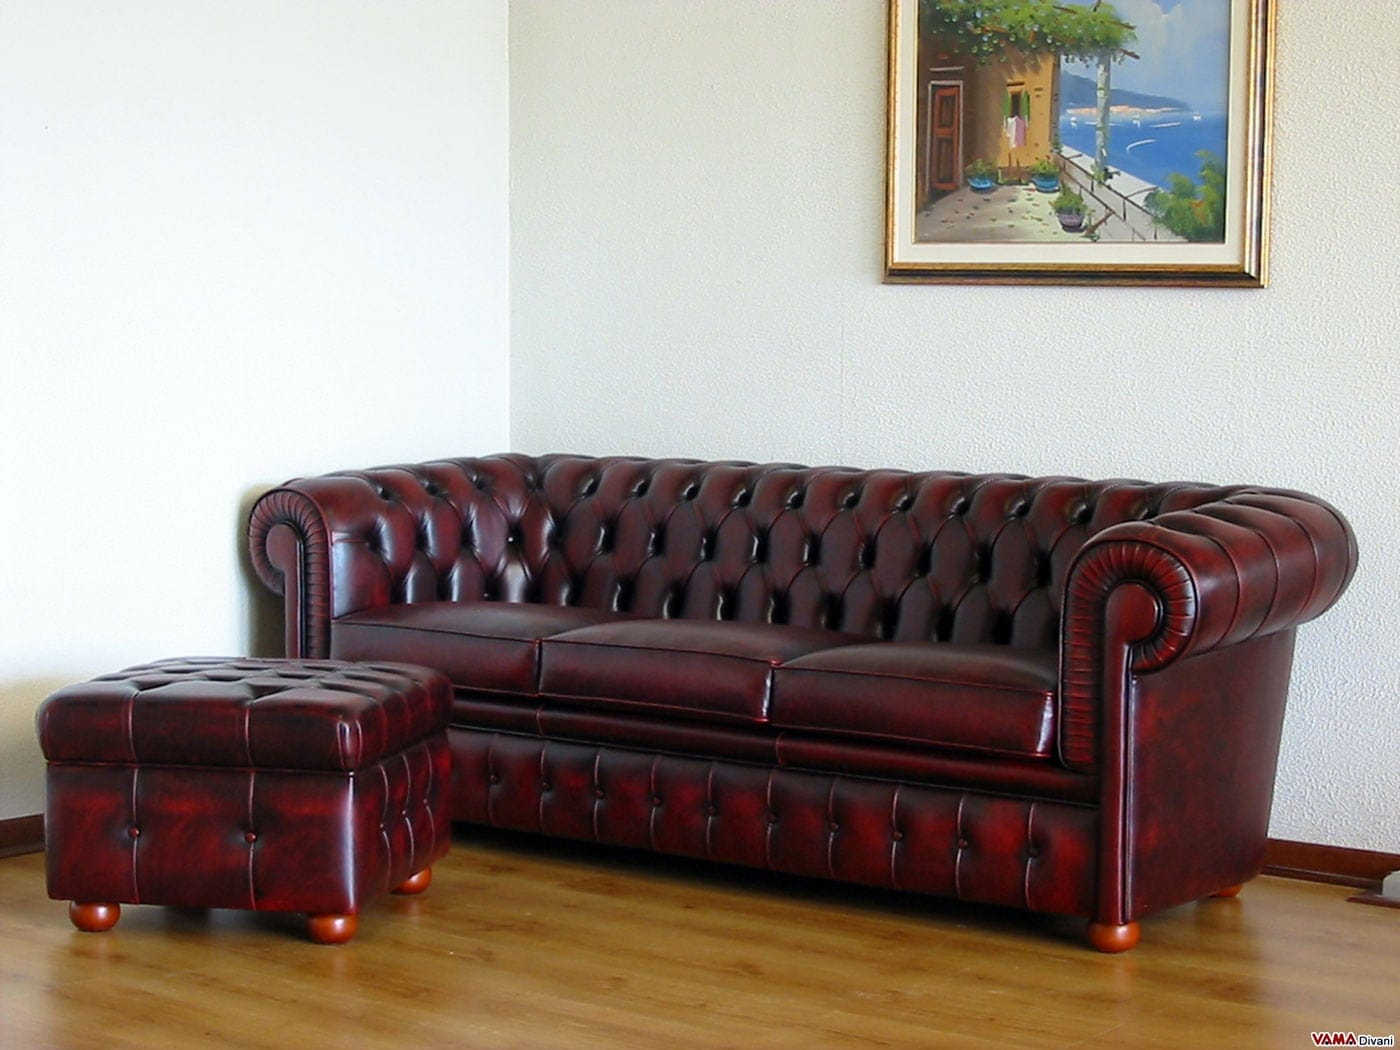 Divani Chesterfield Vintage: Poltrone chesterfield usate ...